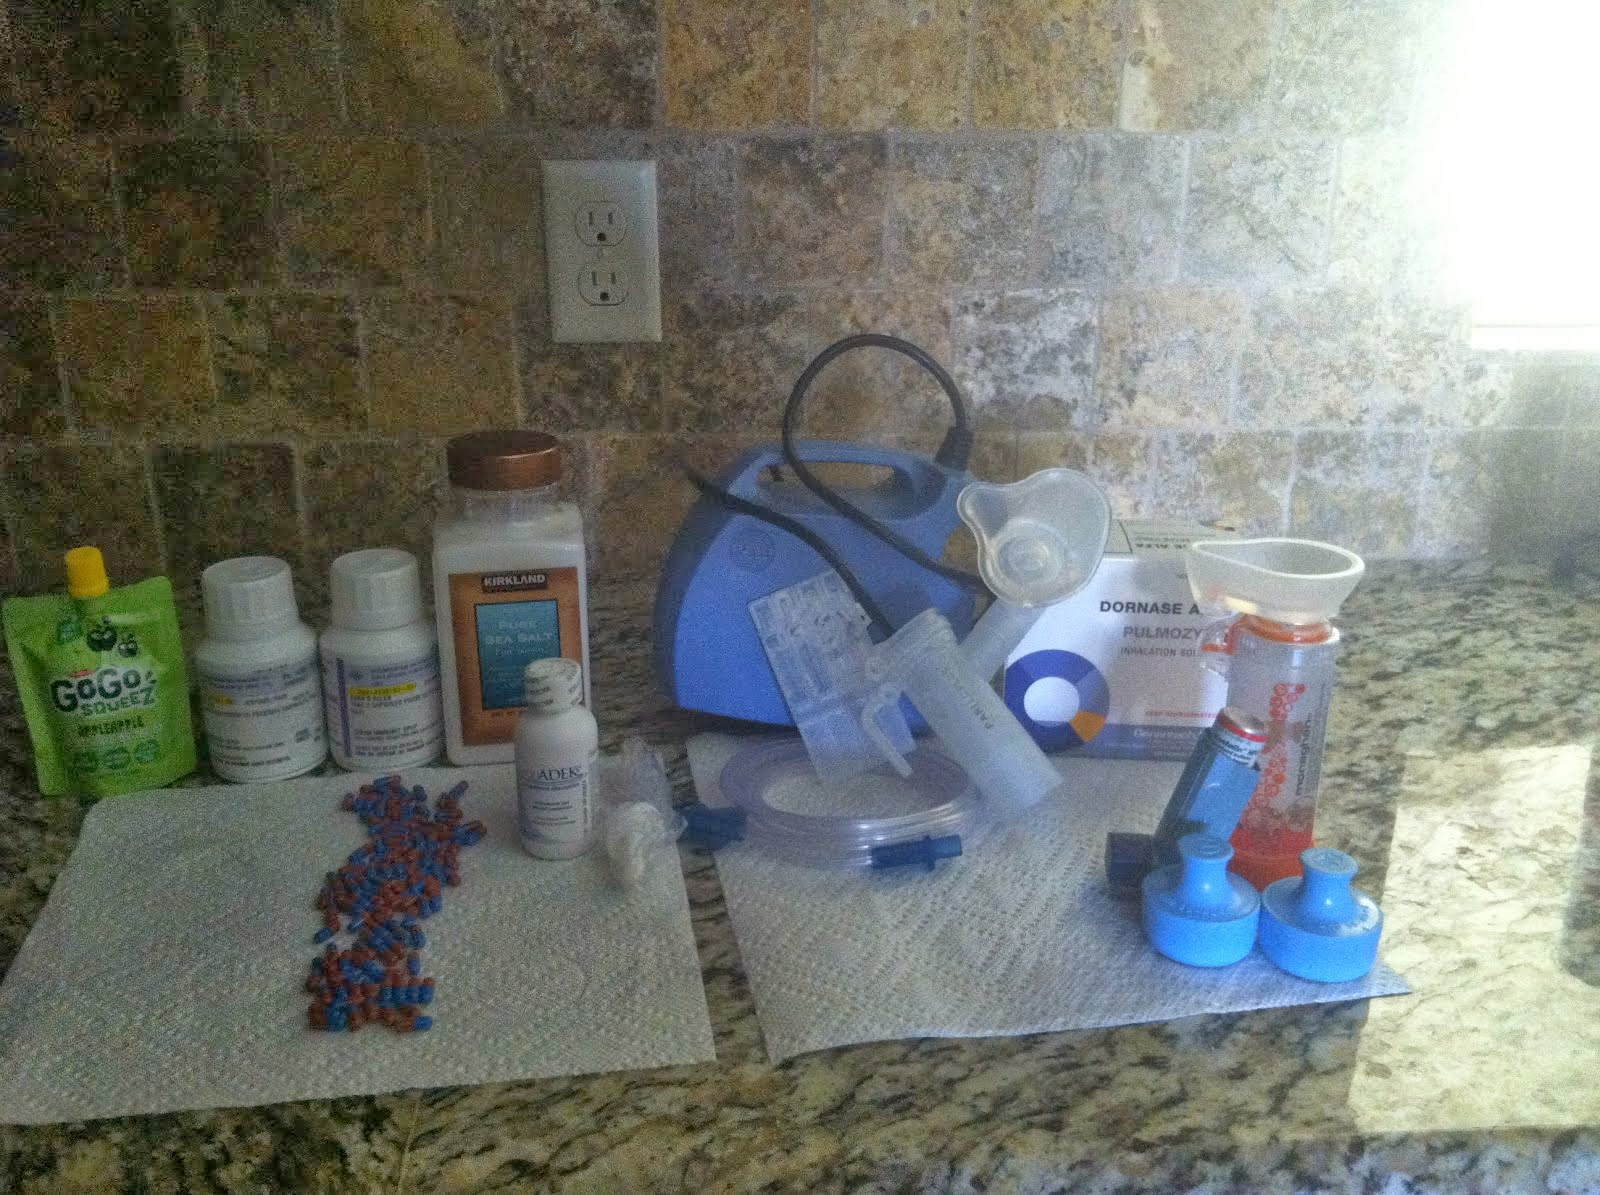 Evan's Daily Medication and Equipment